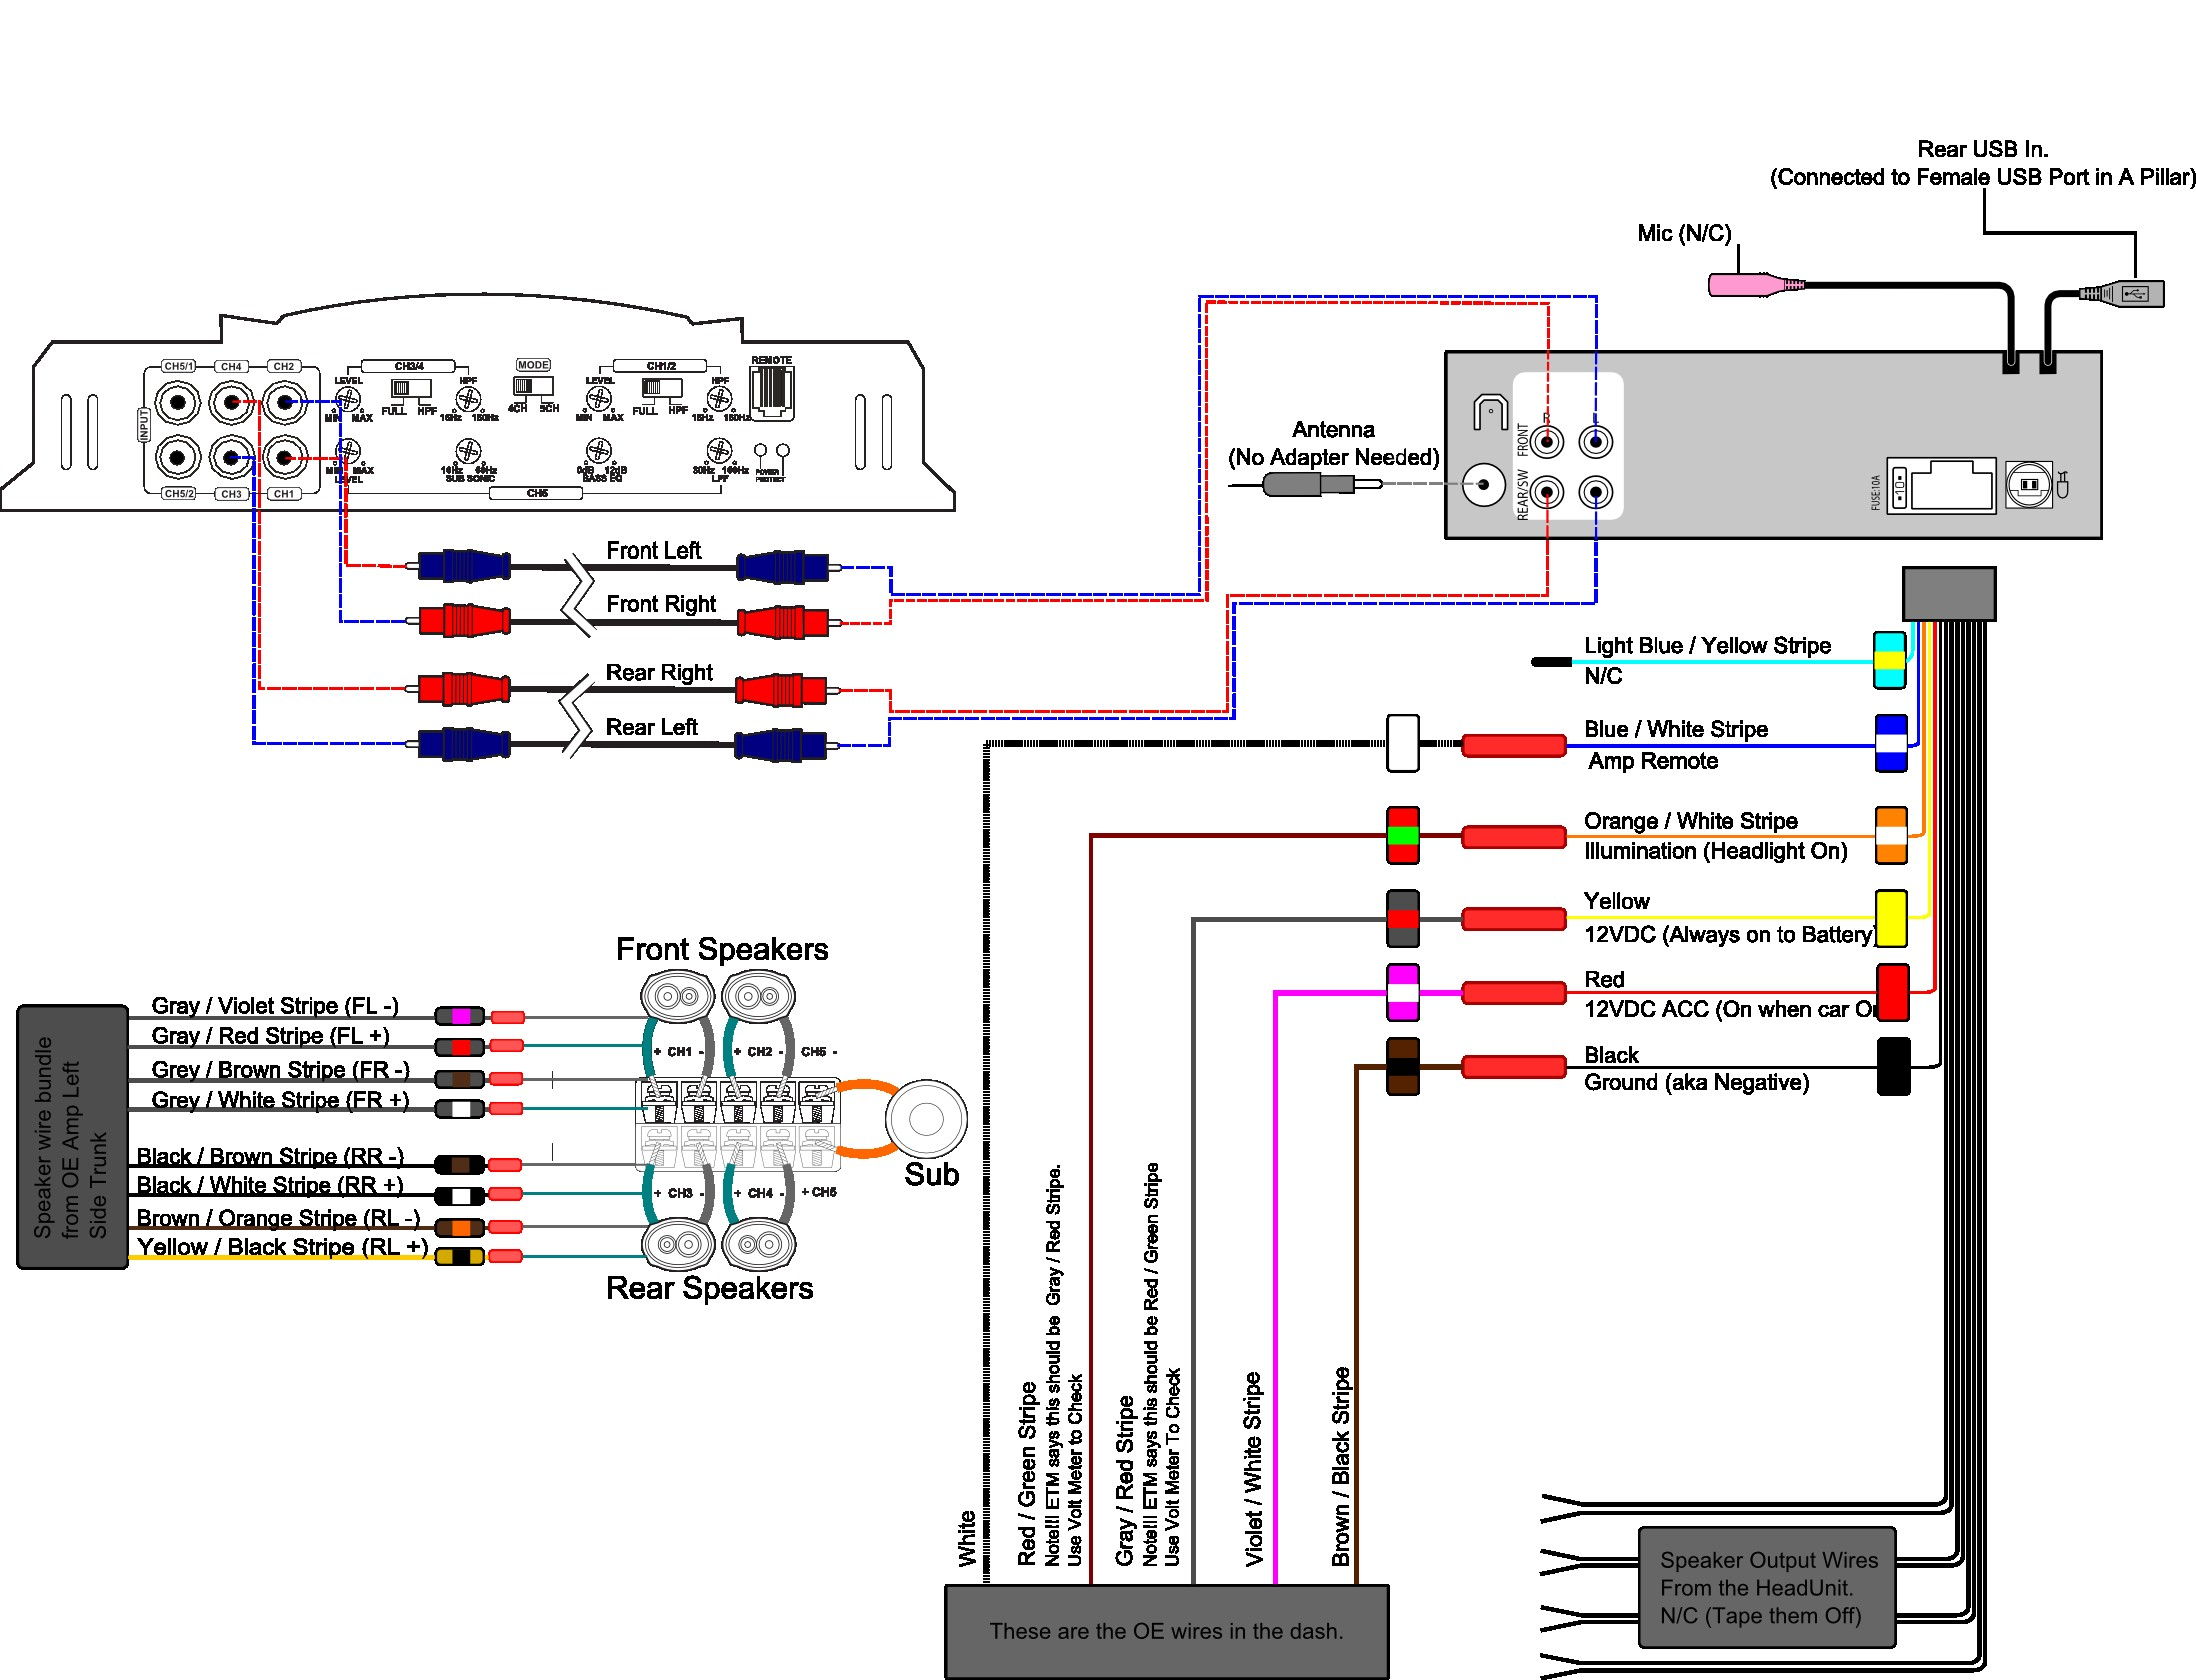 E30 Stereo Wiring Diagram -Wiring Oil Furnace Hot Water | Begeboy Wiring  Diagram SourceBegeboy Wiring Diagram Source